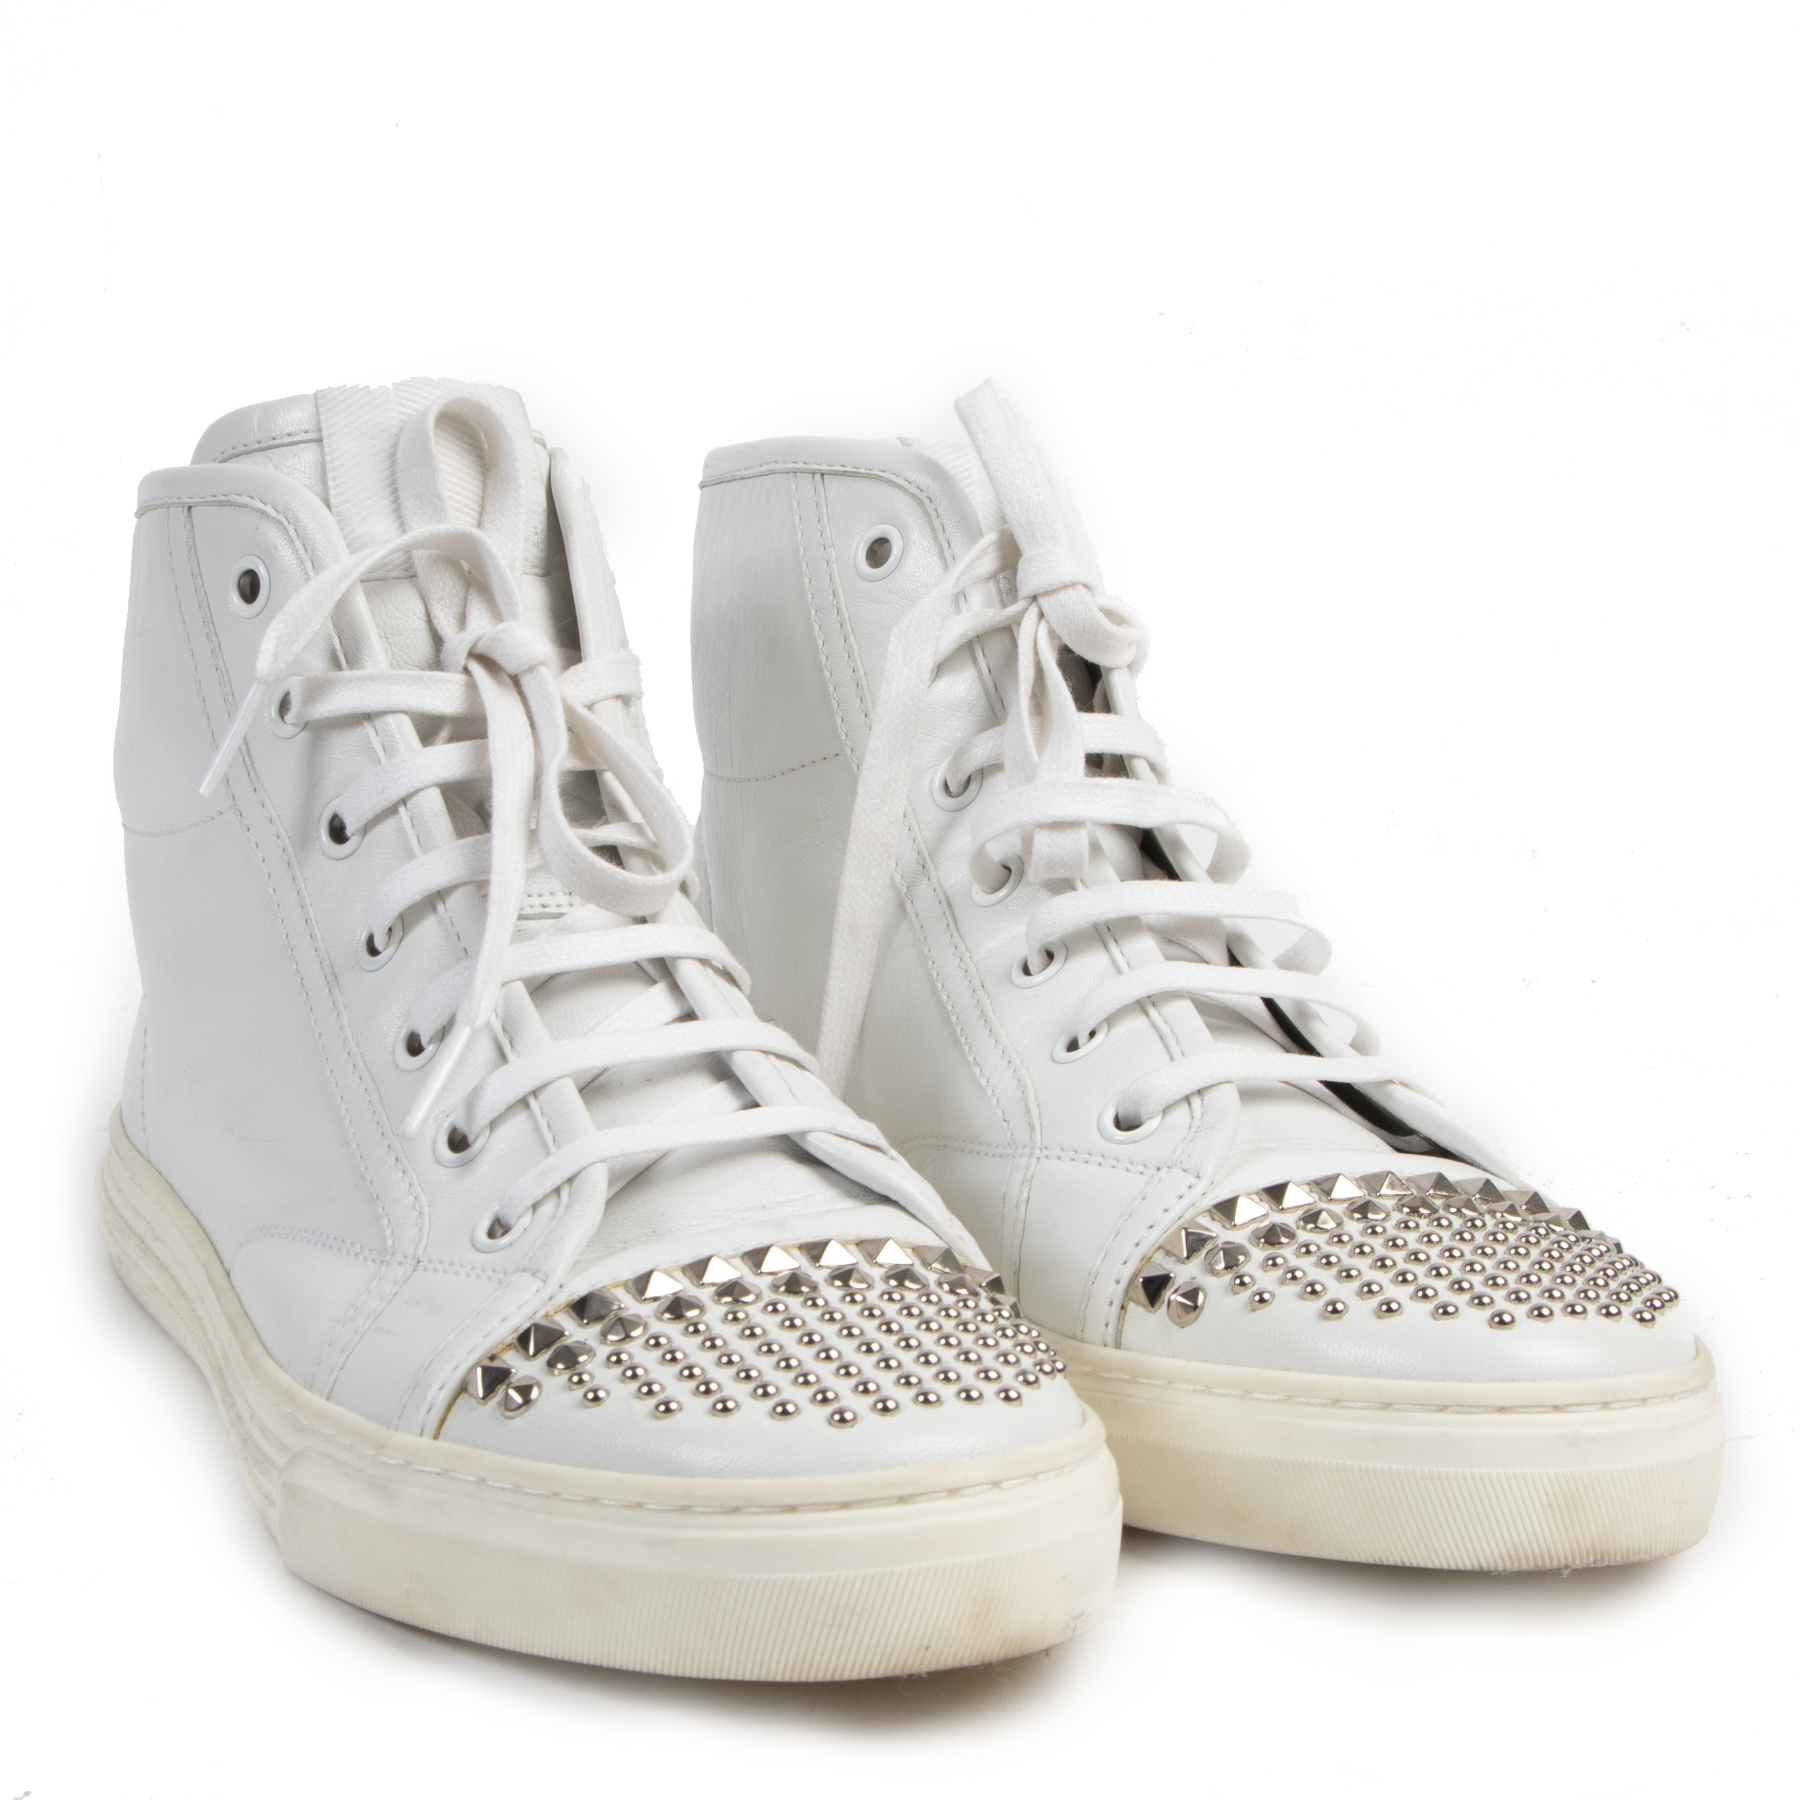 Authentic secondhand Gucci White California Studded Sneakers - Size 38,5 designer sneakers shoes fashion luxury vintage webshop high end brands designers safe secure online shopping webshop